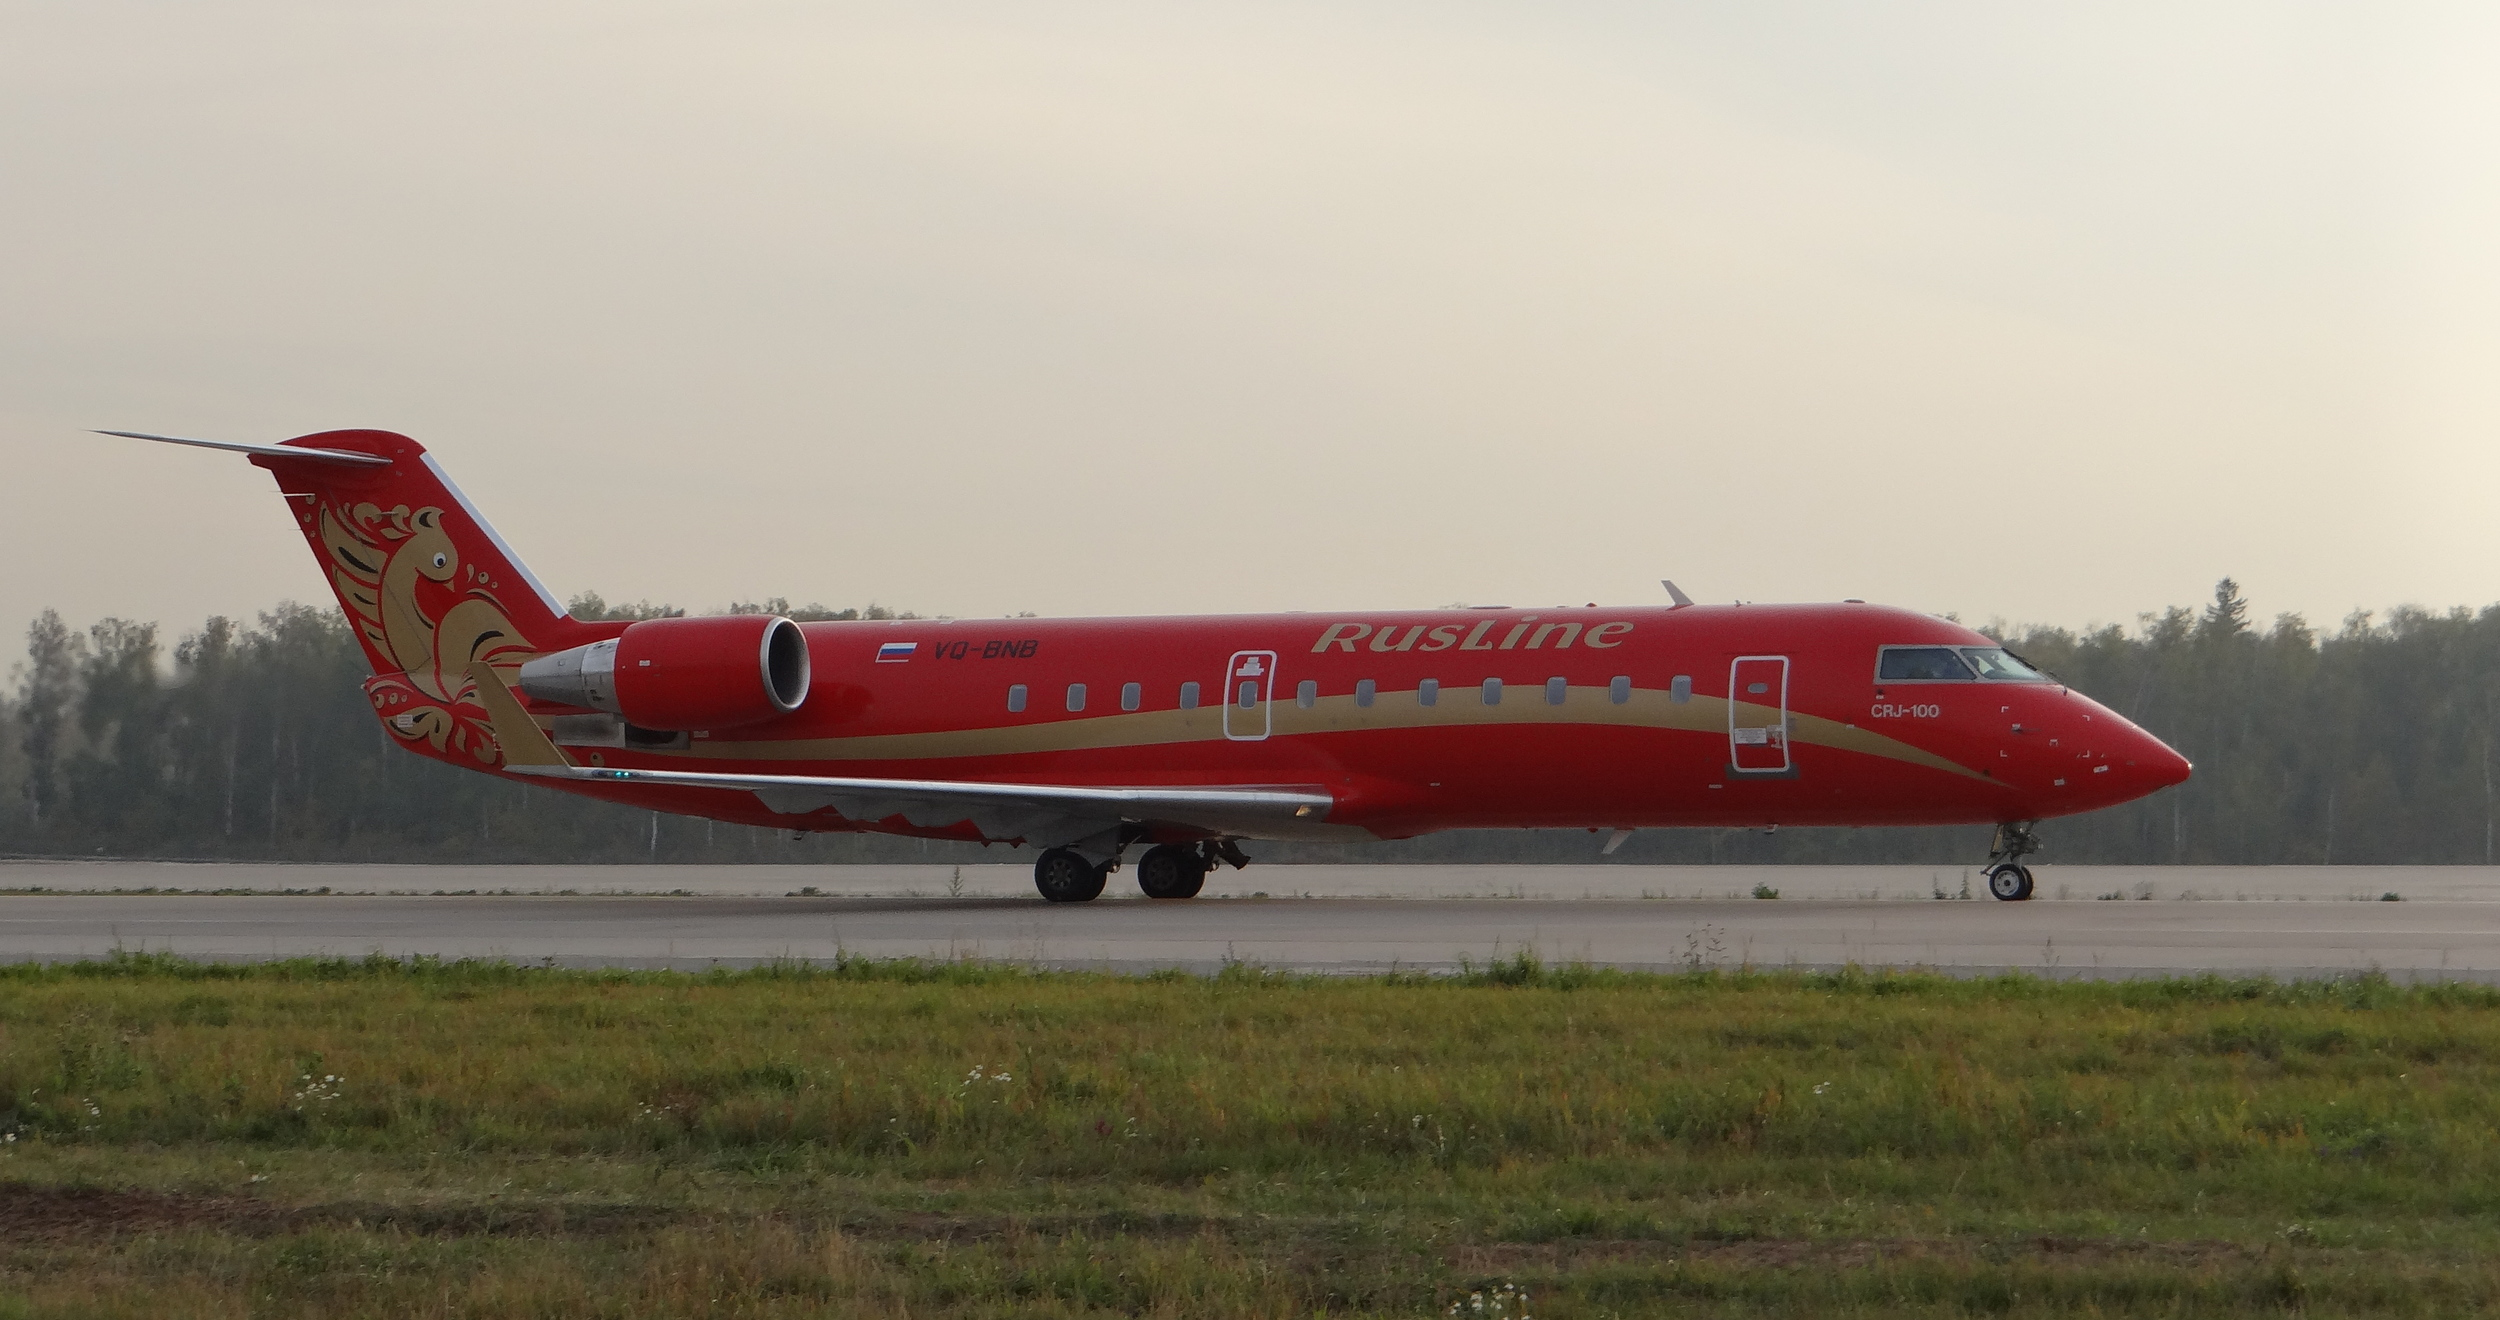 Rusline  is a regional airline, recognizable because of its red livery embroidered with golden Russian folk motives